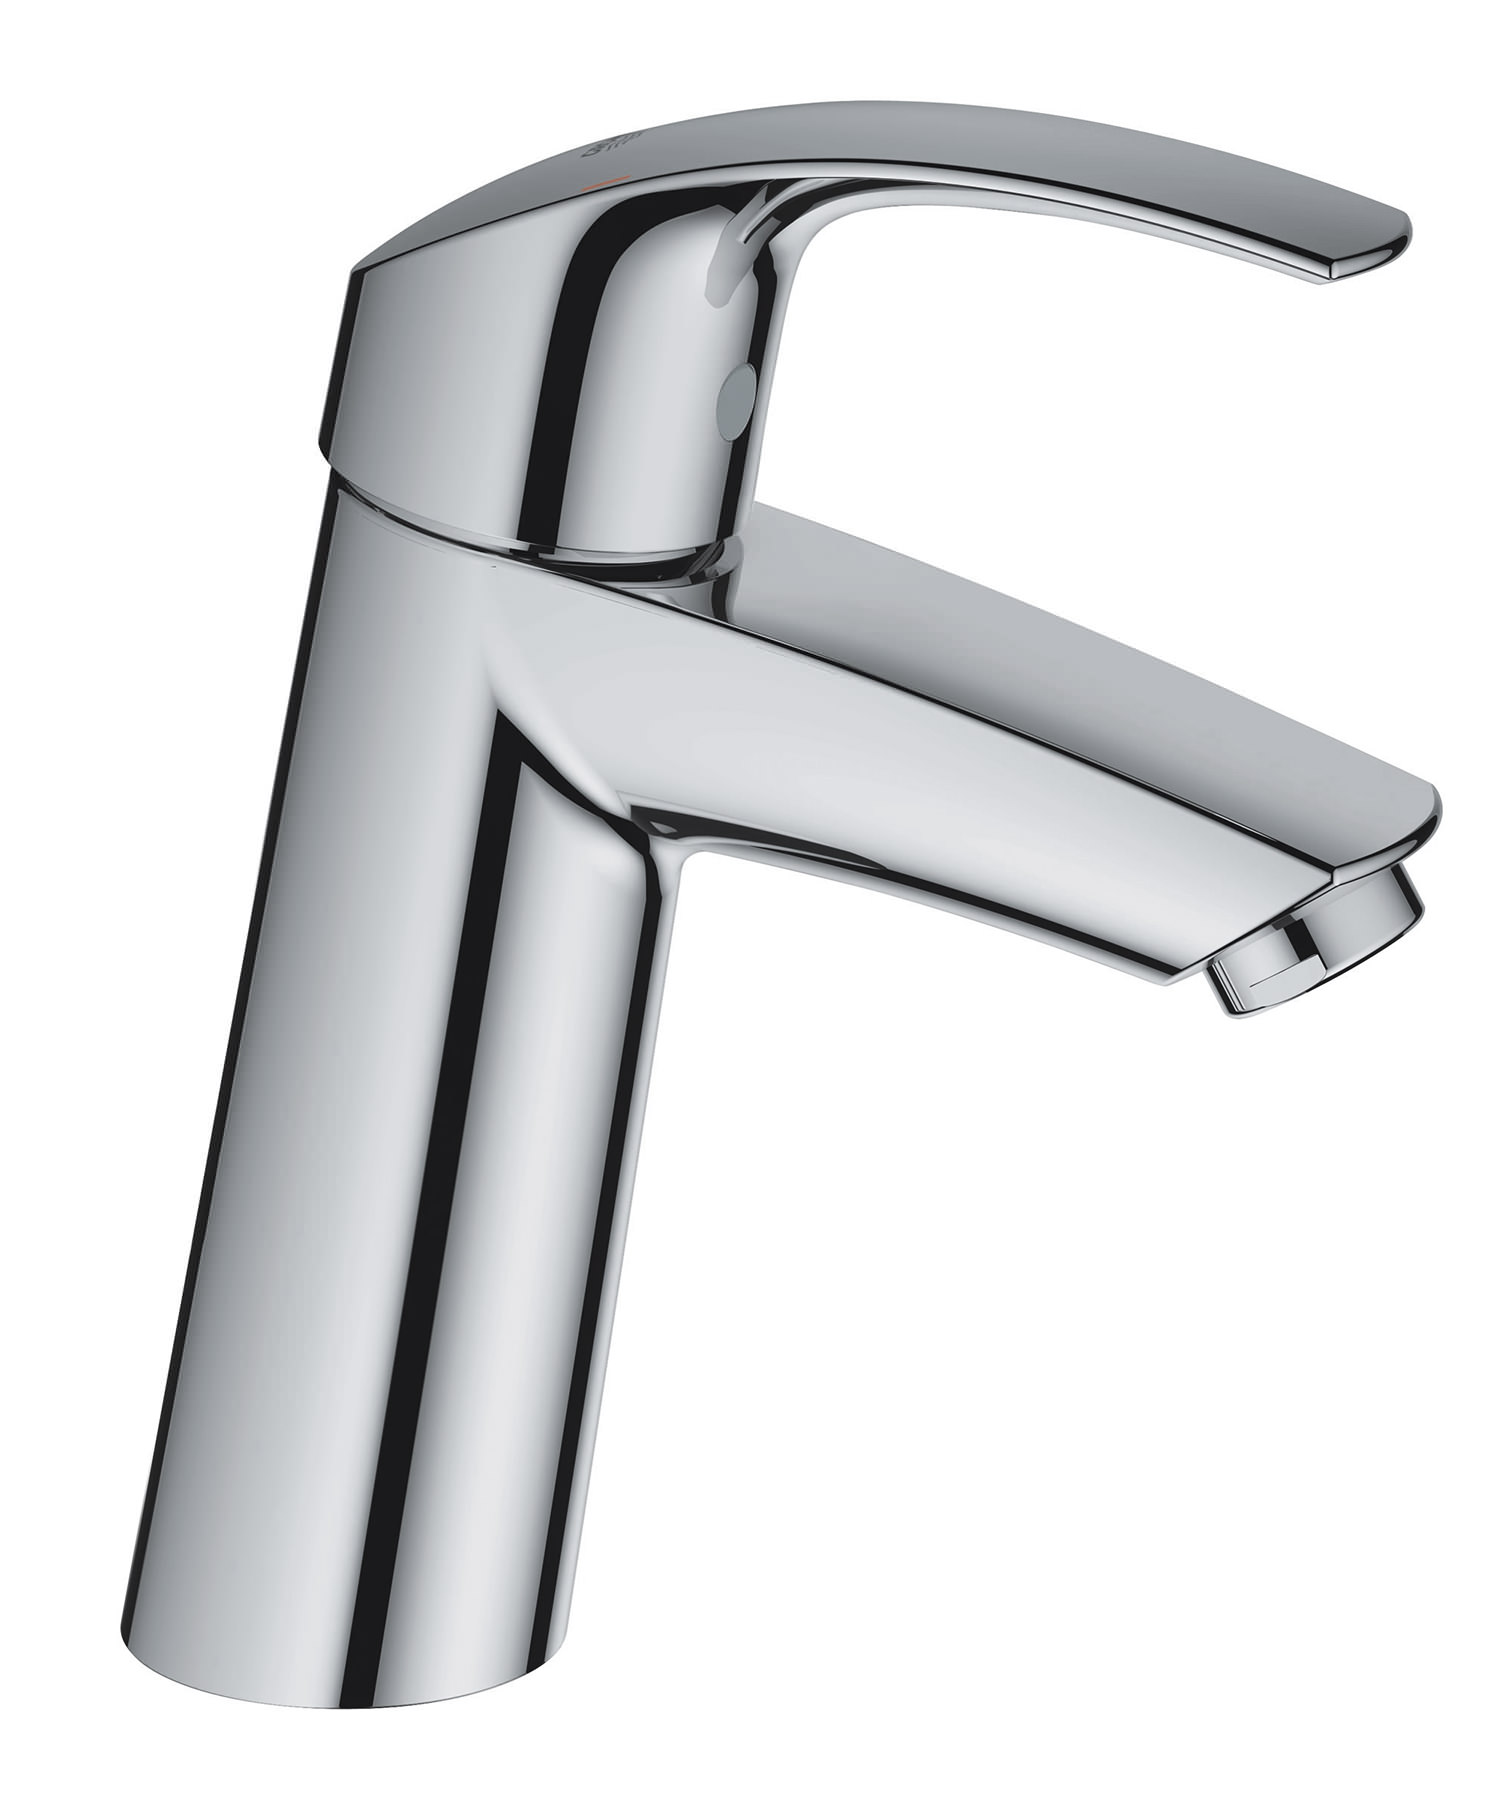 grohe eurosmart basin mixer tap chrome 23324001. Black Bedroom Furniture Sets. Home Design Ideas